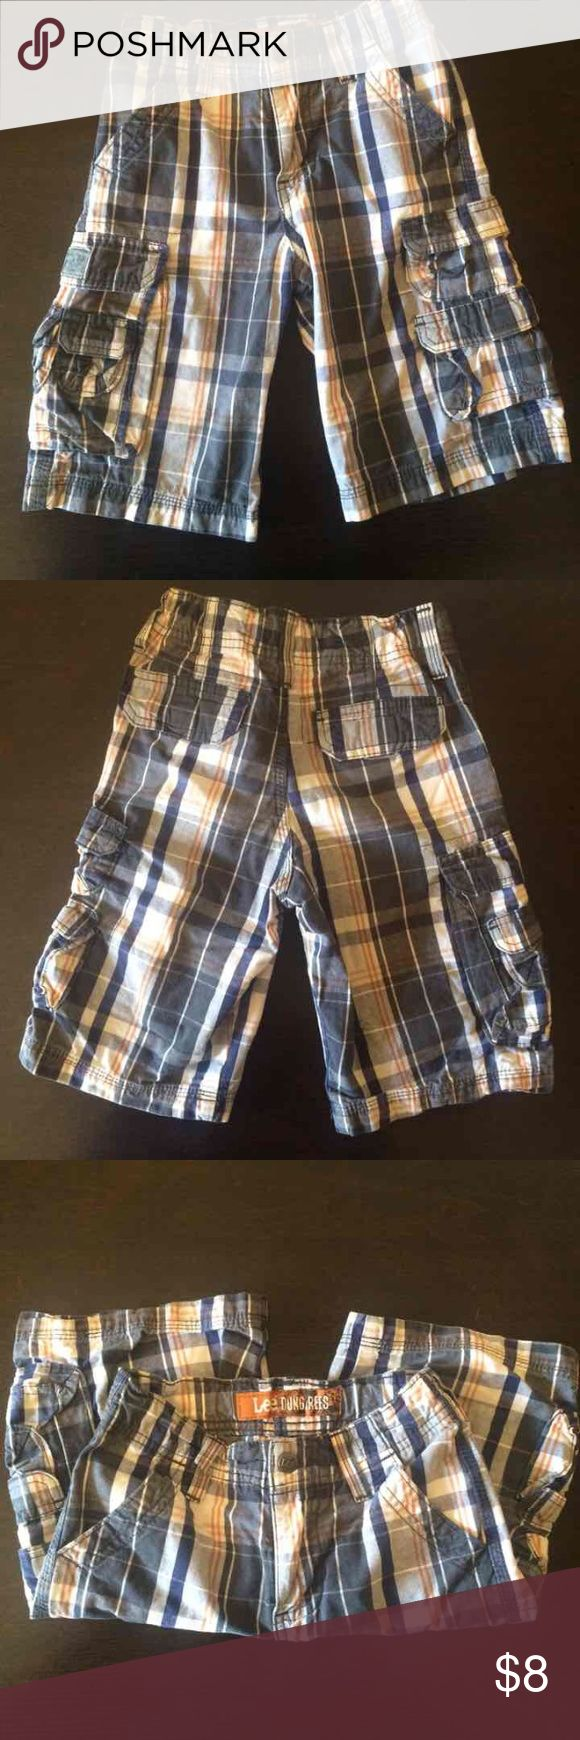 Boys Lee Dungarees Shorts Boys shorts. Color navy blue, white with orange. Size 6 Lee Bottoms Shorts